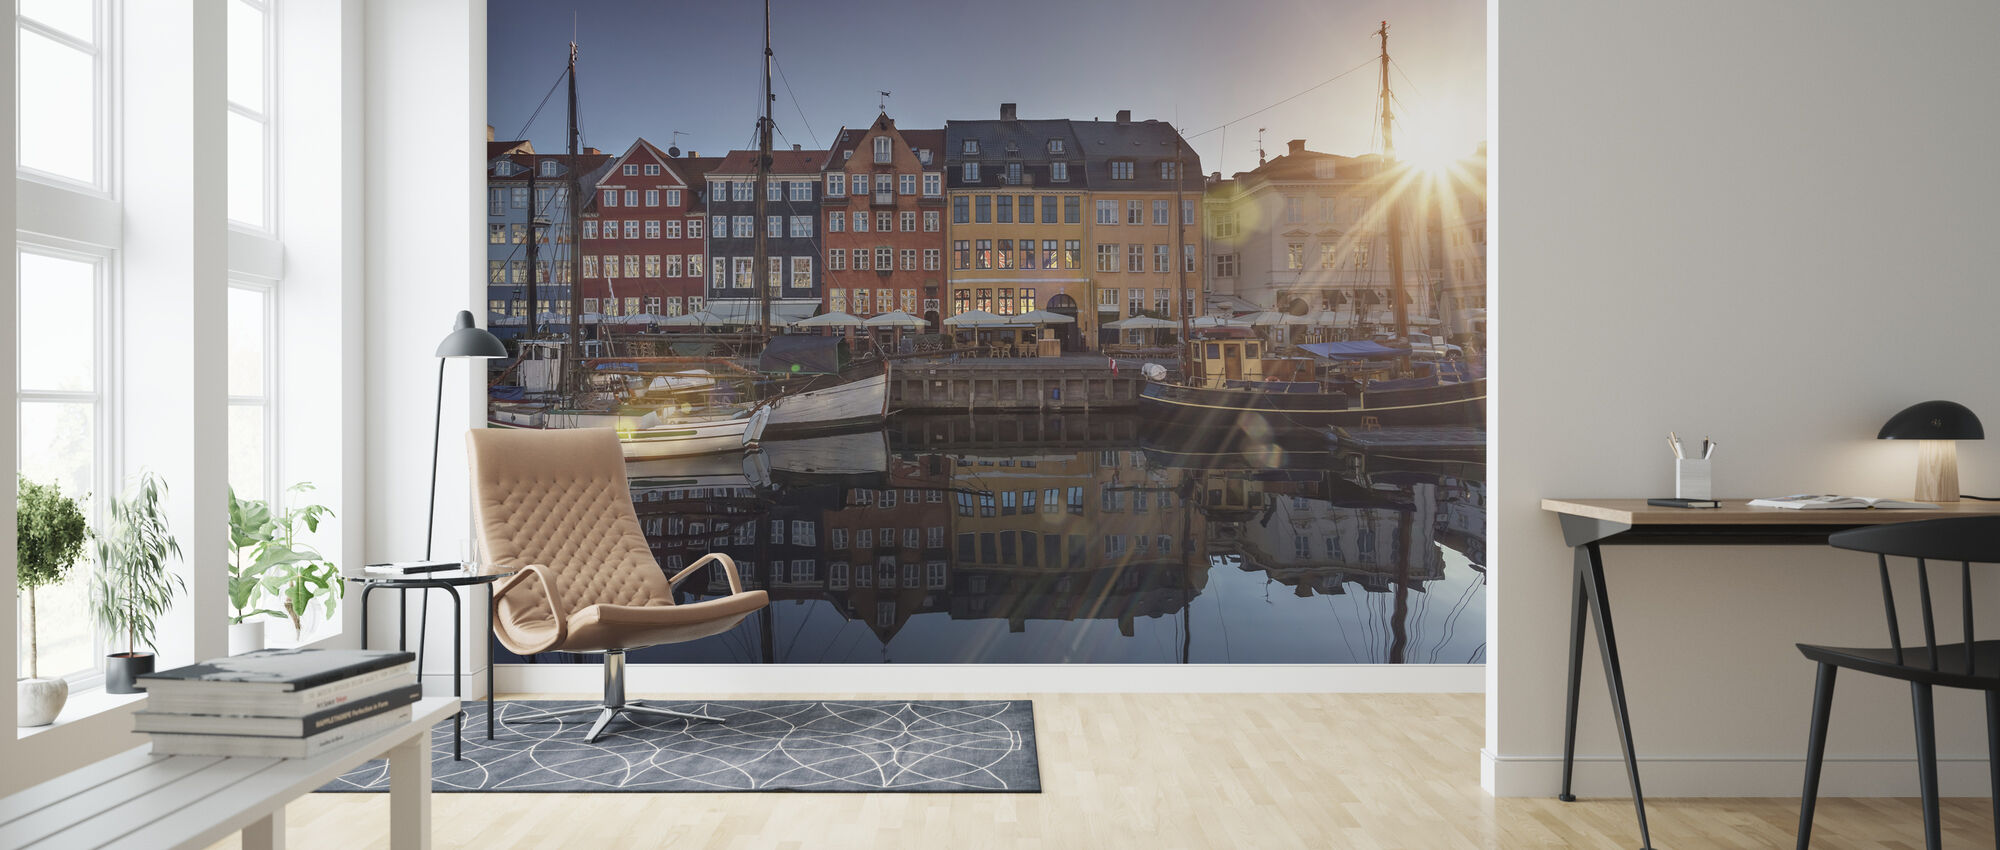 Sunset in Nyhavn, Copenhagen, Denmark - Wallpaper - Living Room